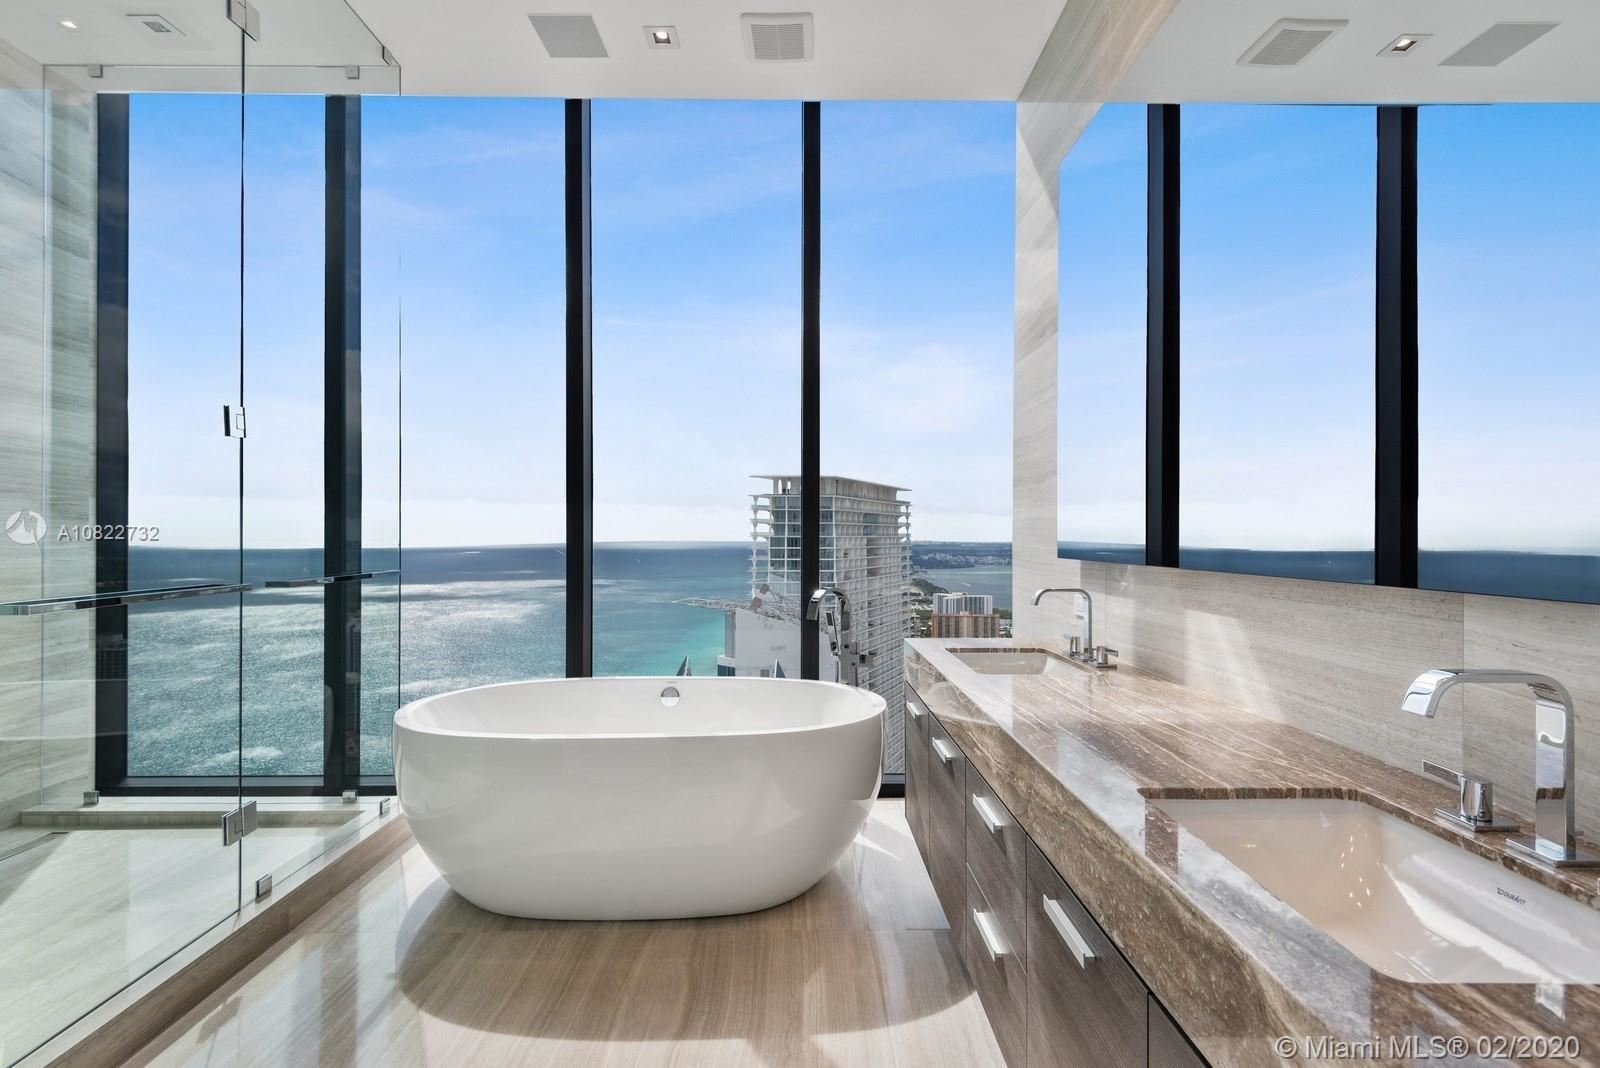 17141 Collins Ave #4702, Sunny Isles, FL 33160 - #: A10822732